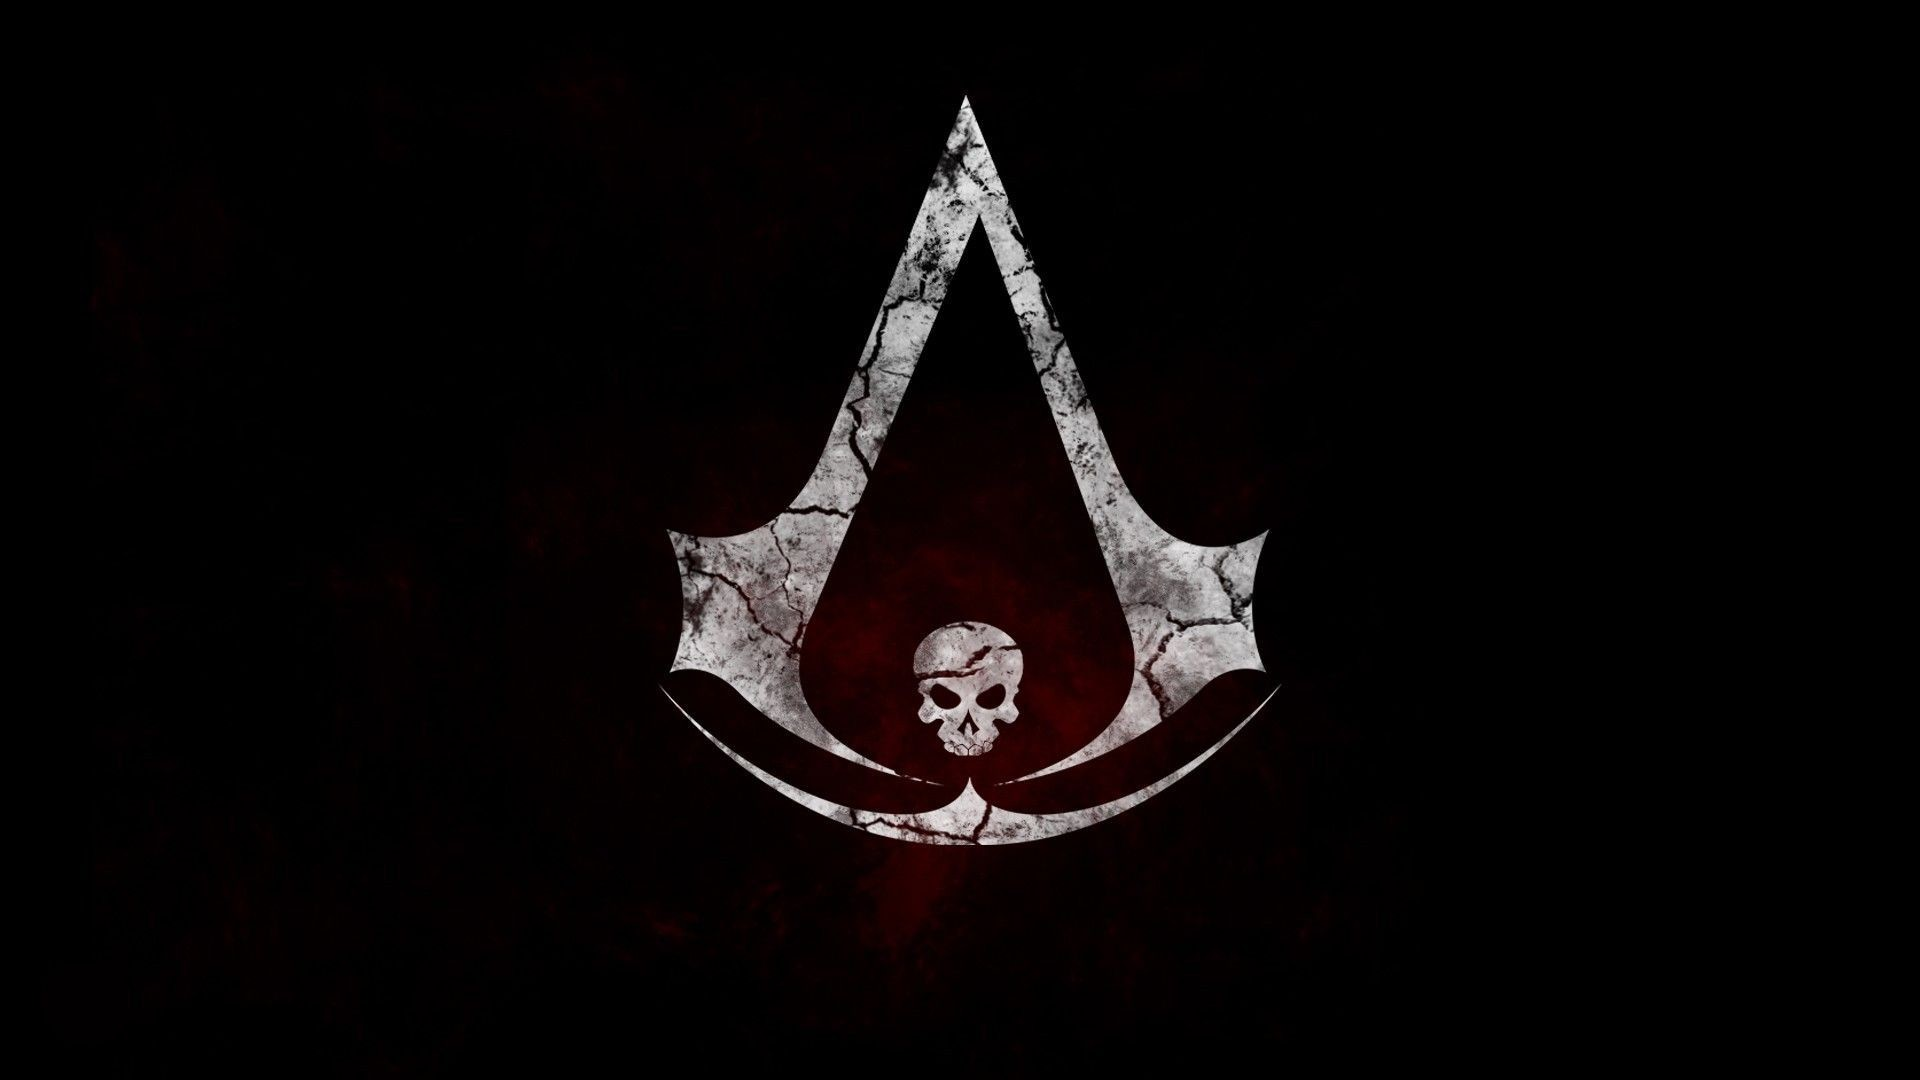 1920x1080 Assassins Creed IV Black Flag Full HD Wallpaper and Background